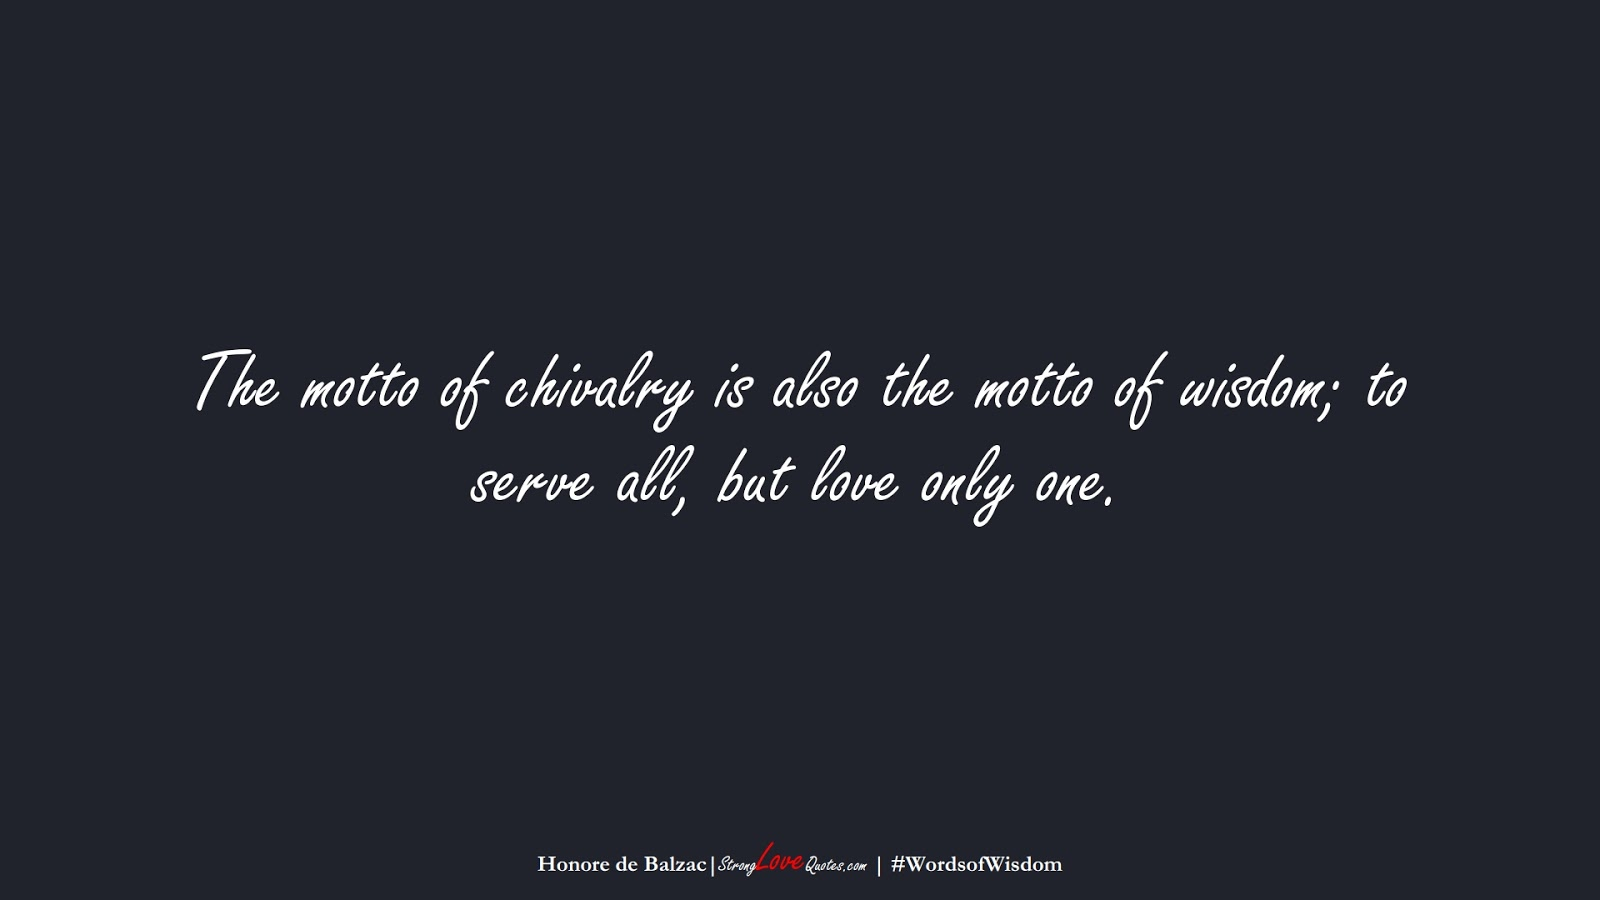 The motto of chivalry is also the motto of wisdom; to serve all, but love only one. (Honore de Balzac);  #WordsofWisdom